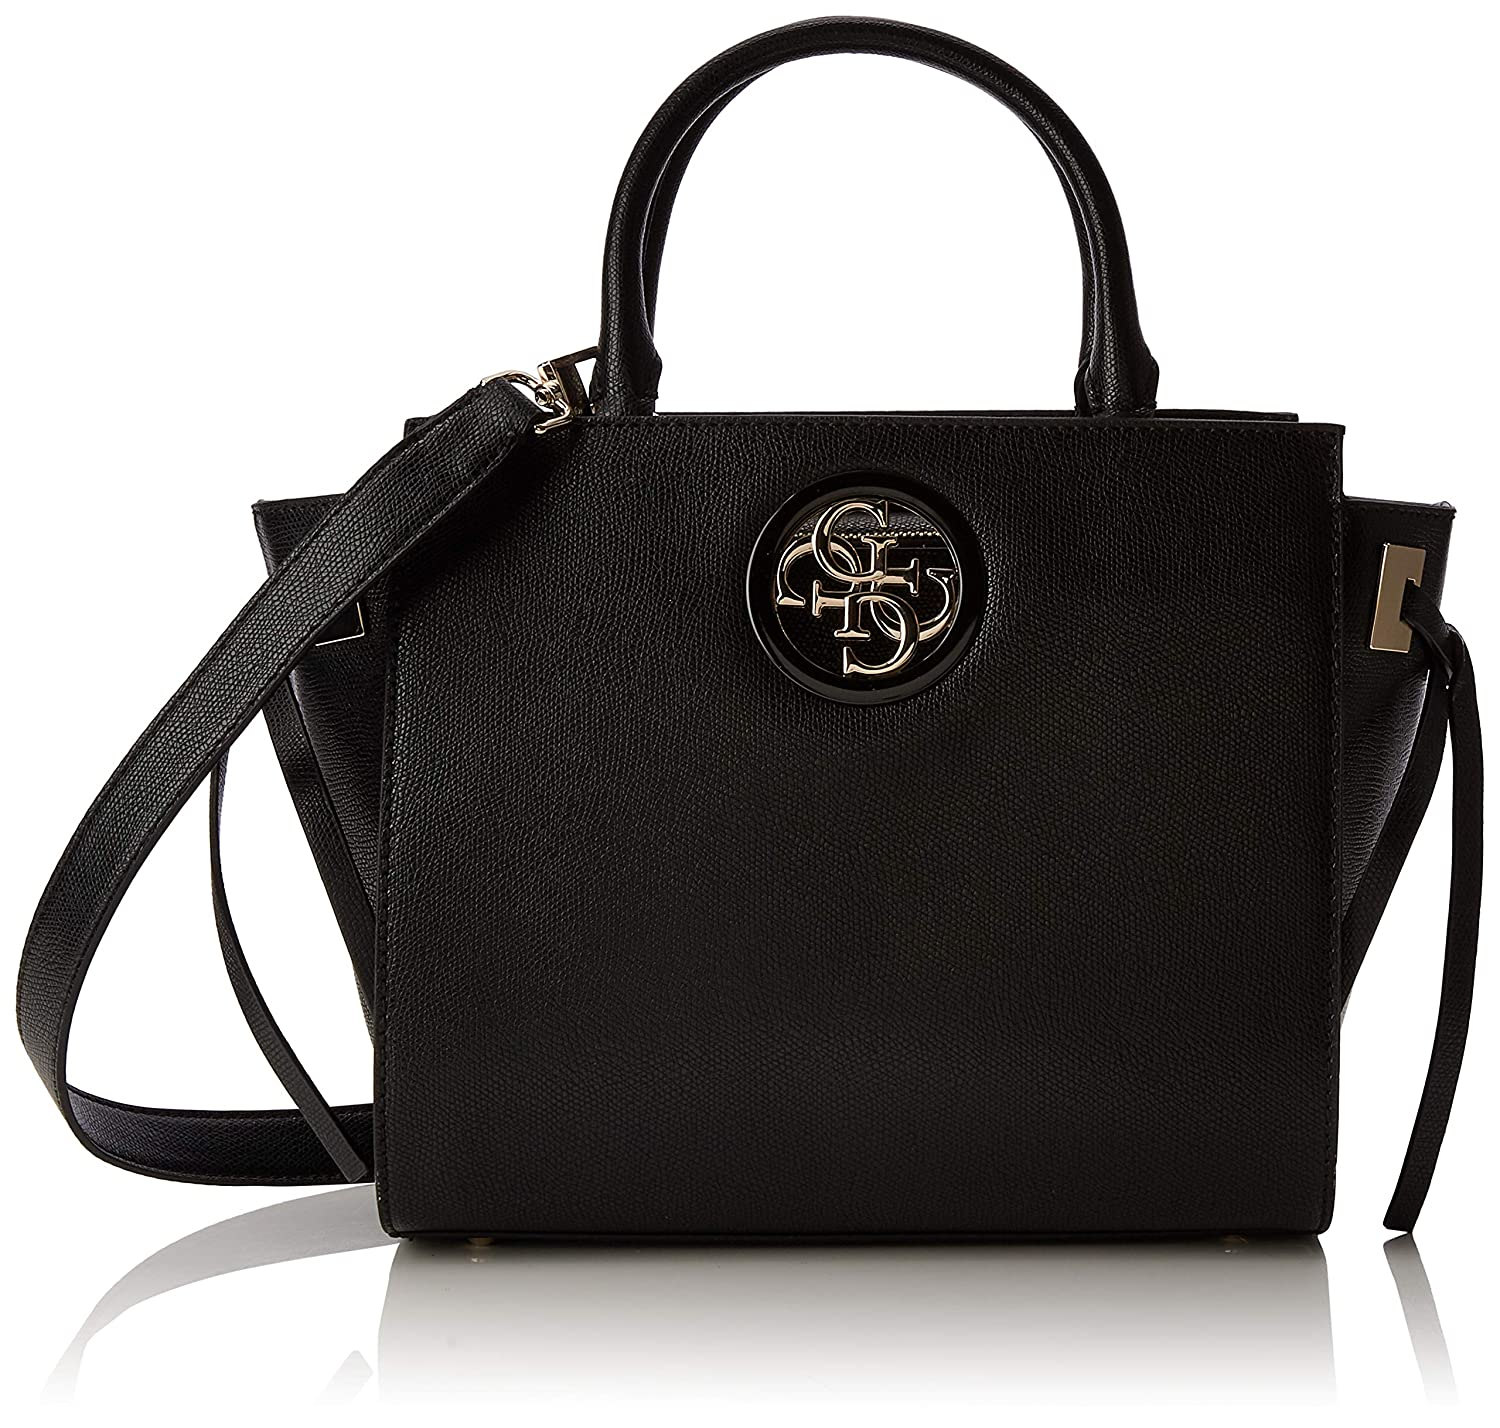 Guess Open Road Society Shopper Bag